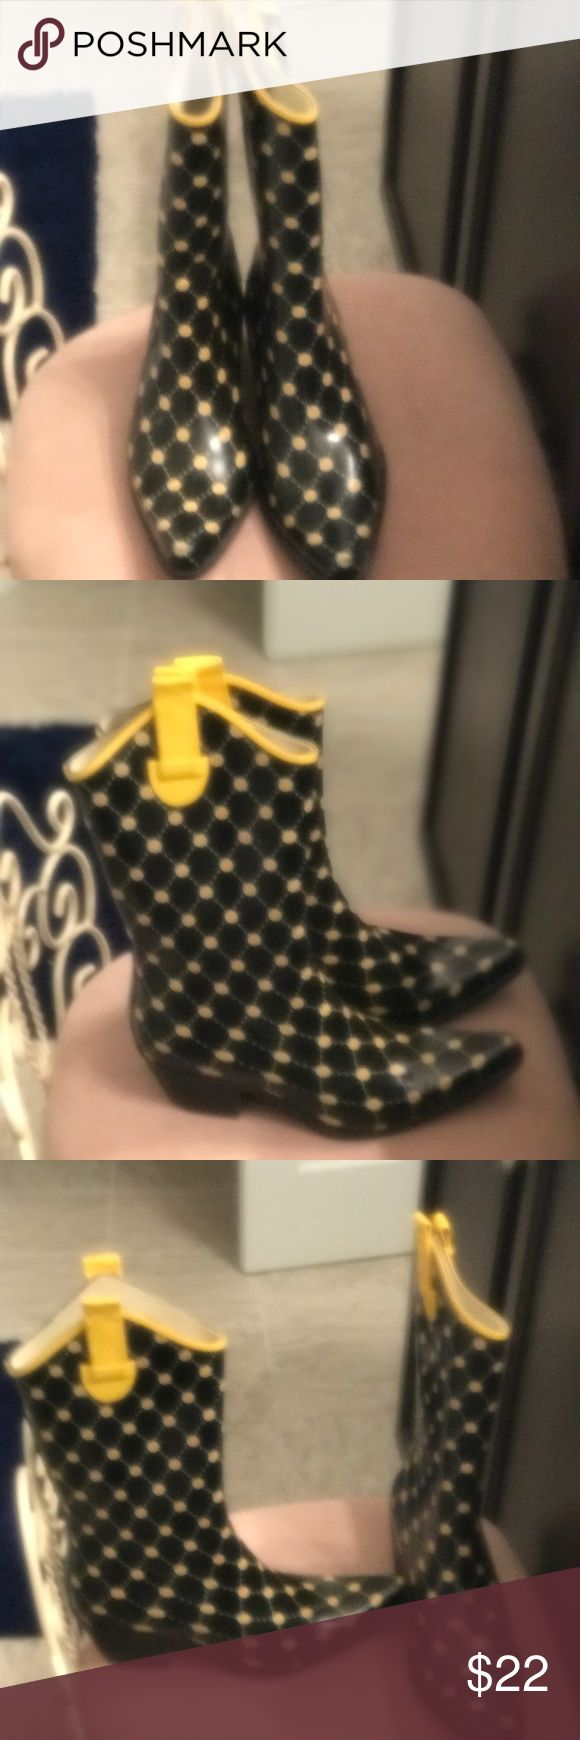 Black and yellow rubber rain boots Great condition rain boots Shoes Winter & Rain Boots